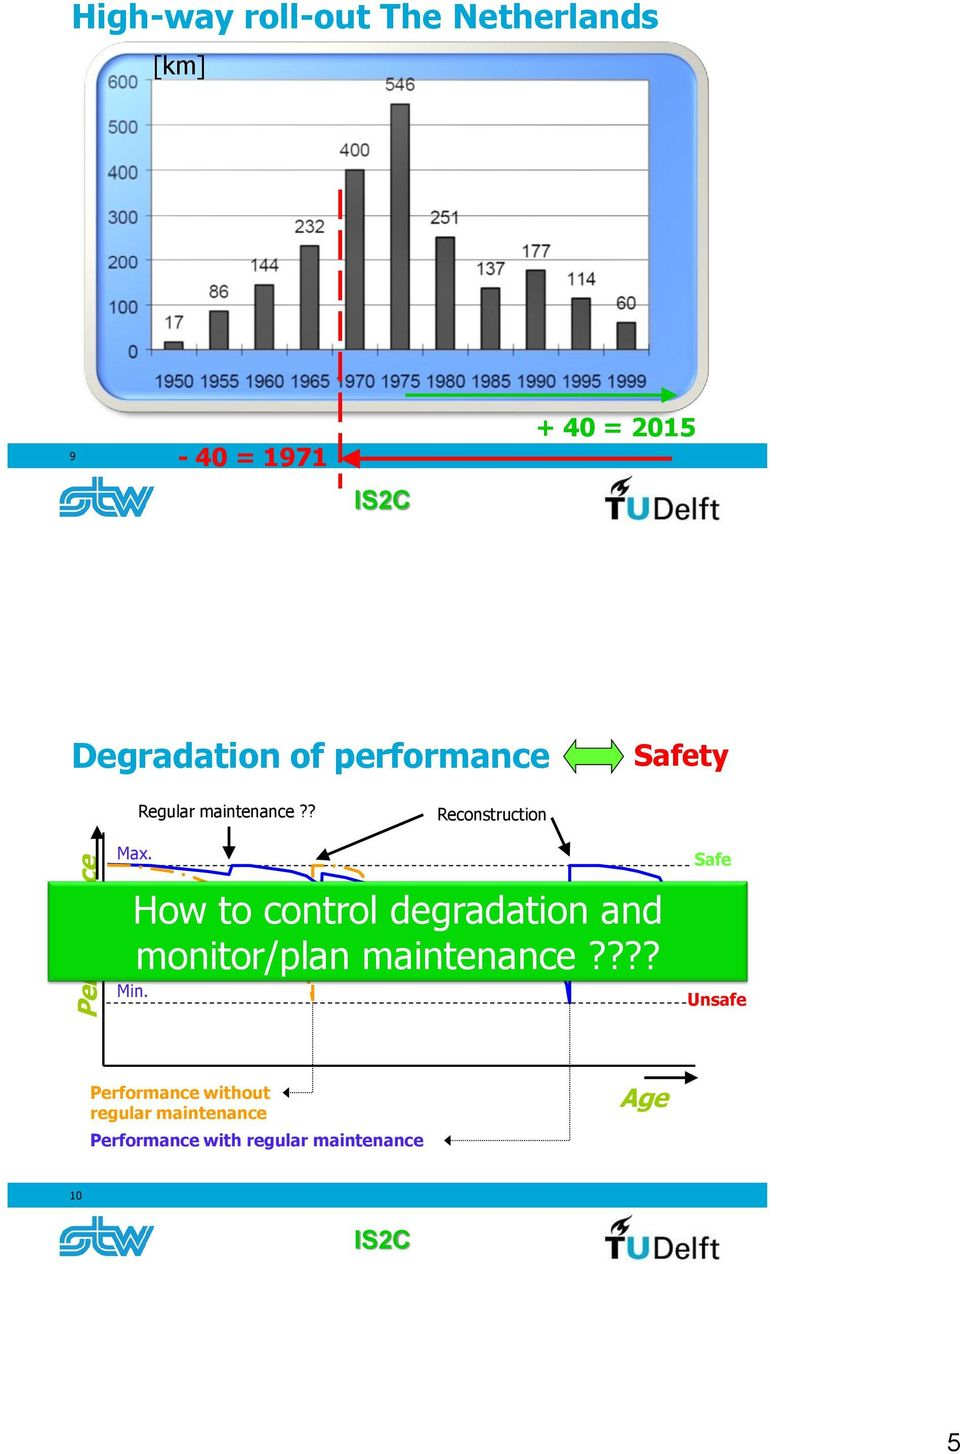 How to control degradation and monitor/plan maintenance???? Min.